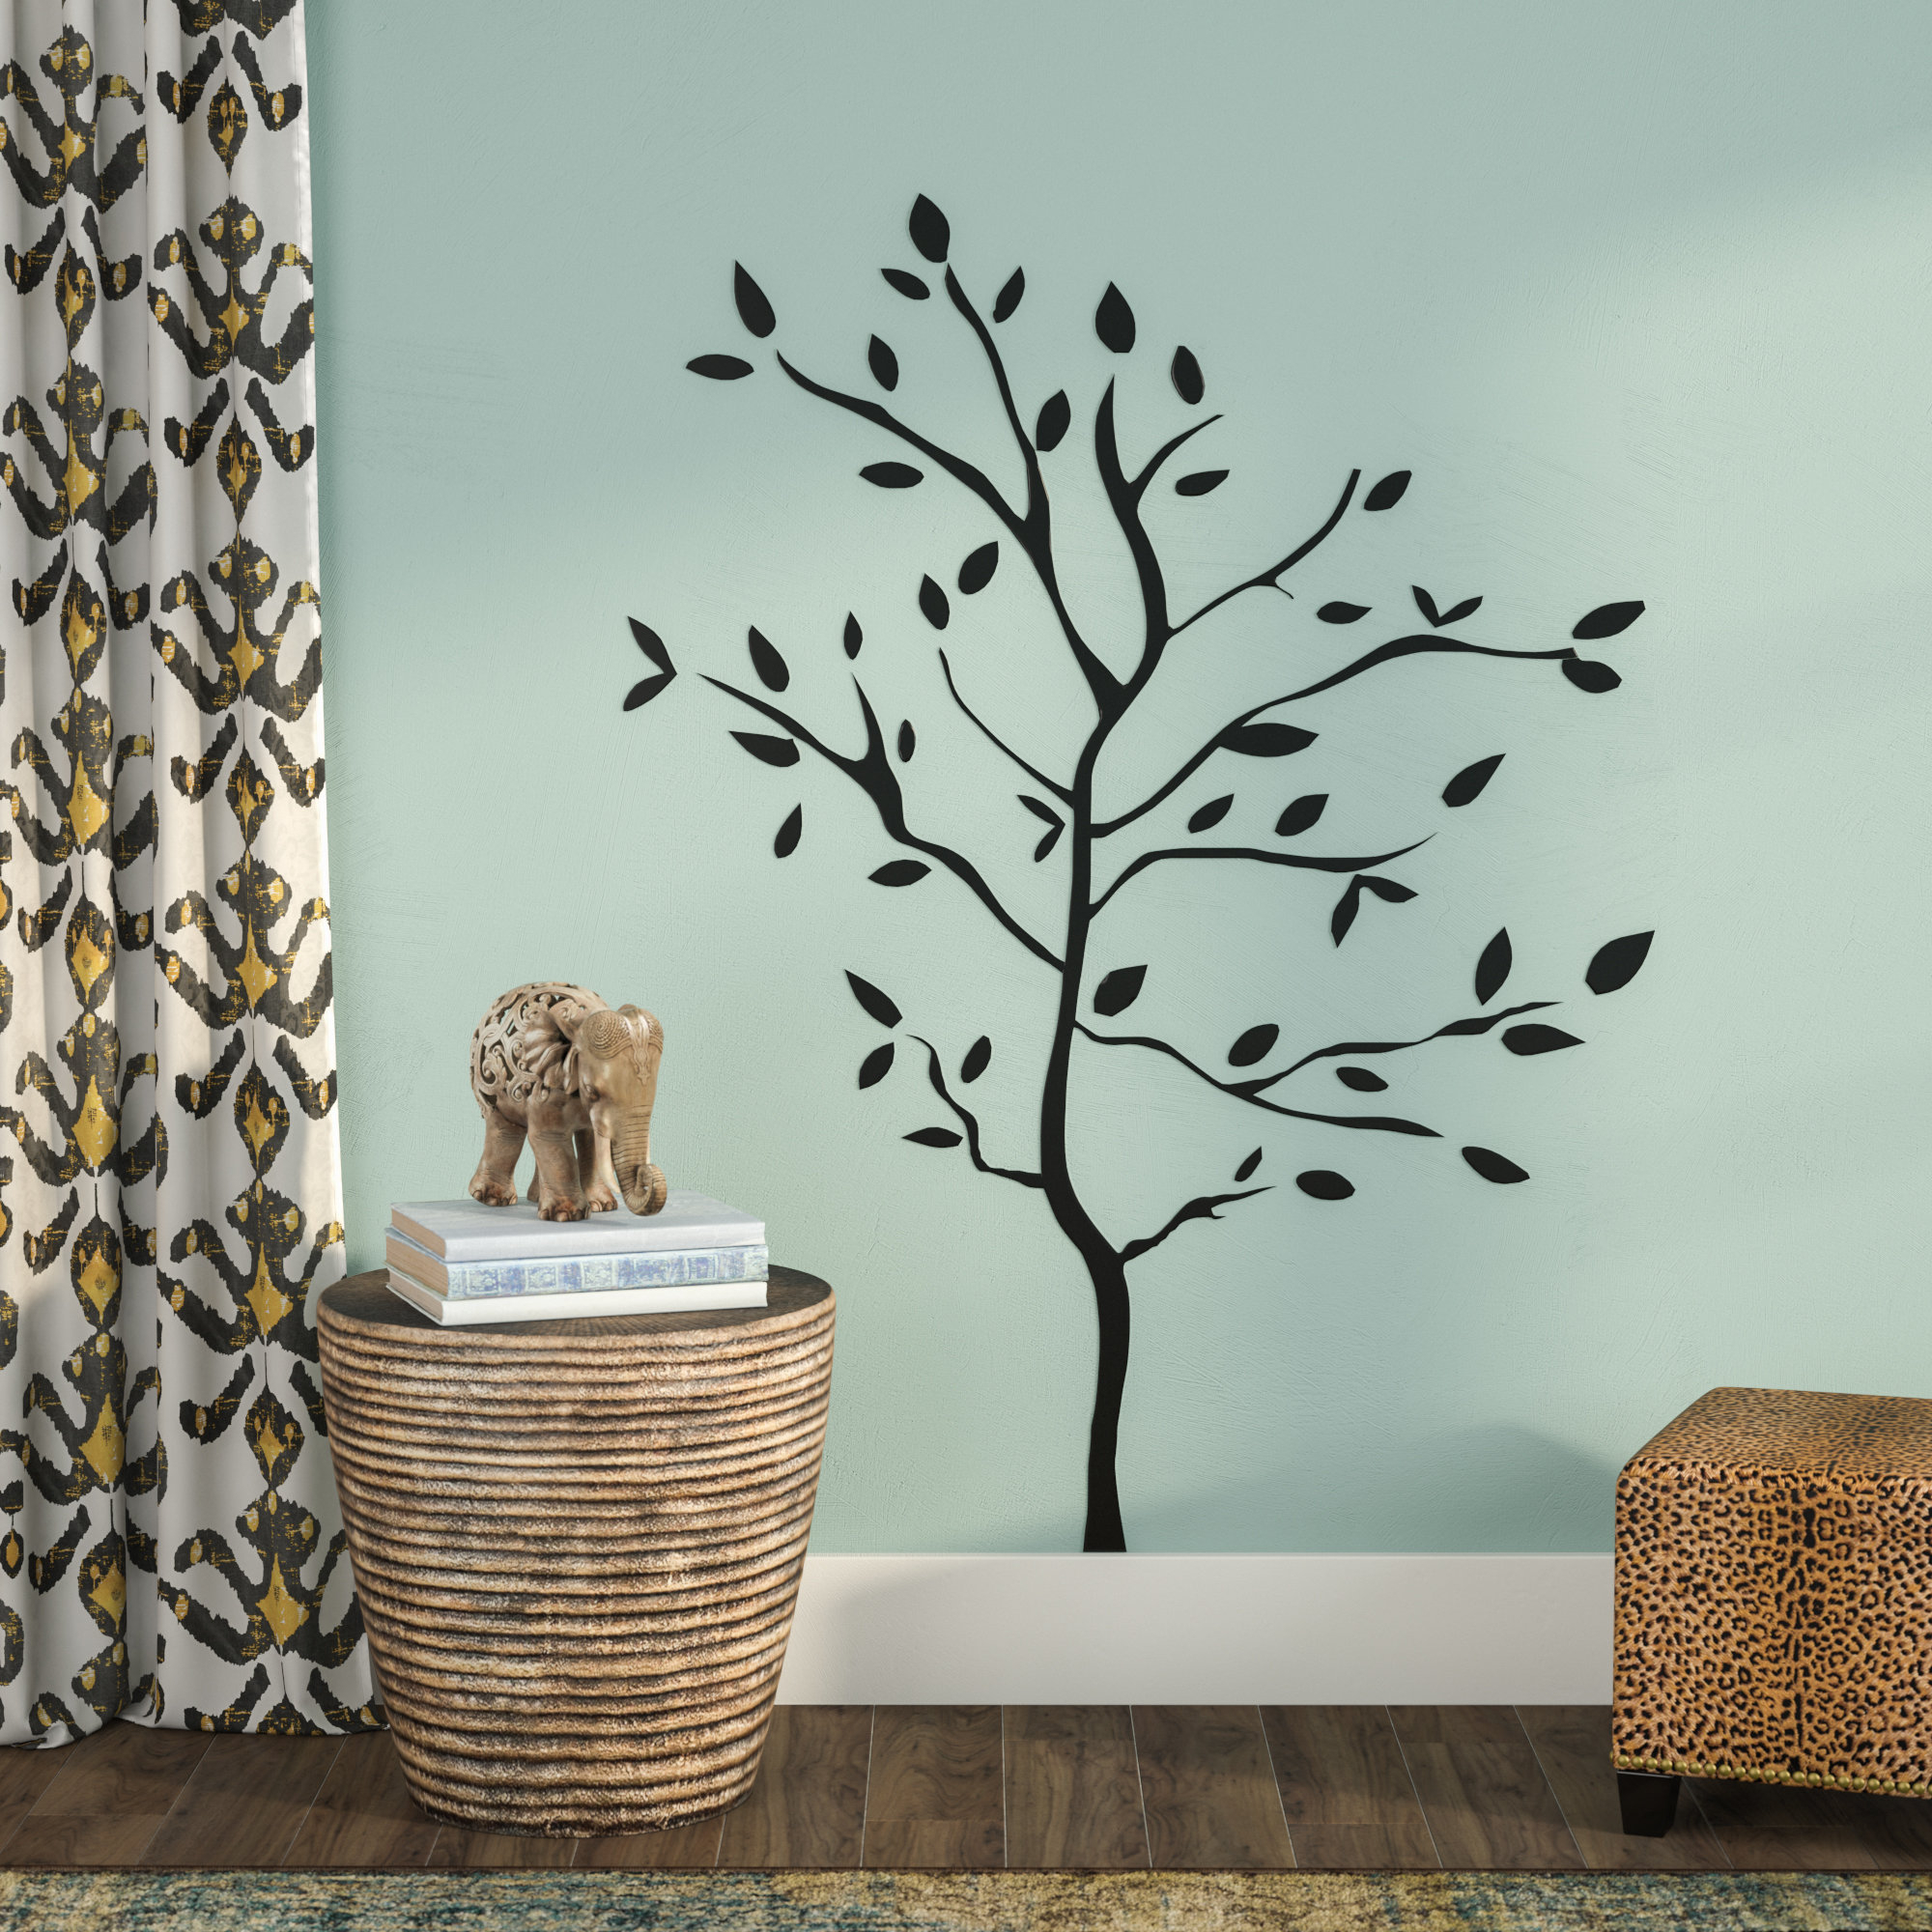 Tree Branch Wall Mirror | Wayfair Regarding Cromartie Tree Branch Wall Mirrors (Image 14 of 20)